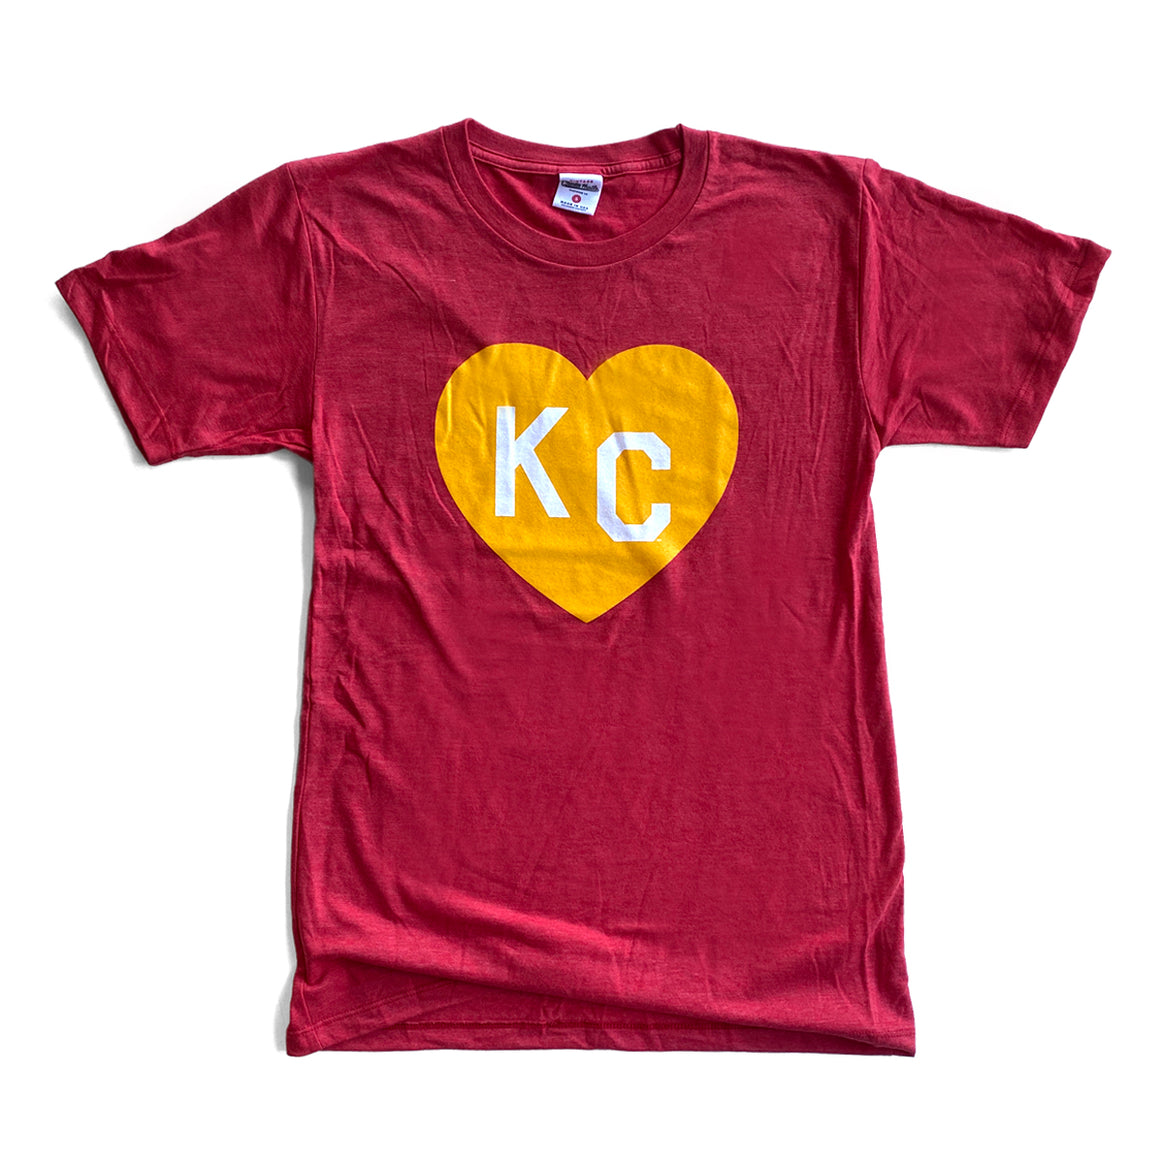 CHARLIE HUSTLE | KC HEART T-SHIRT - RED